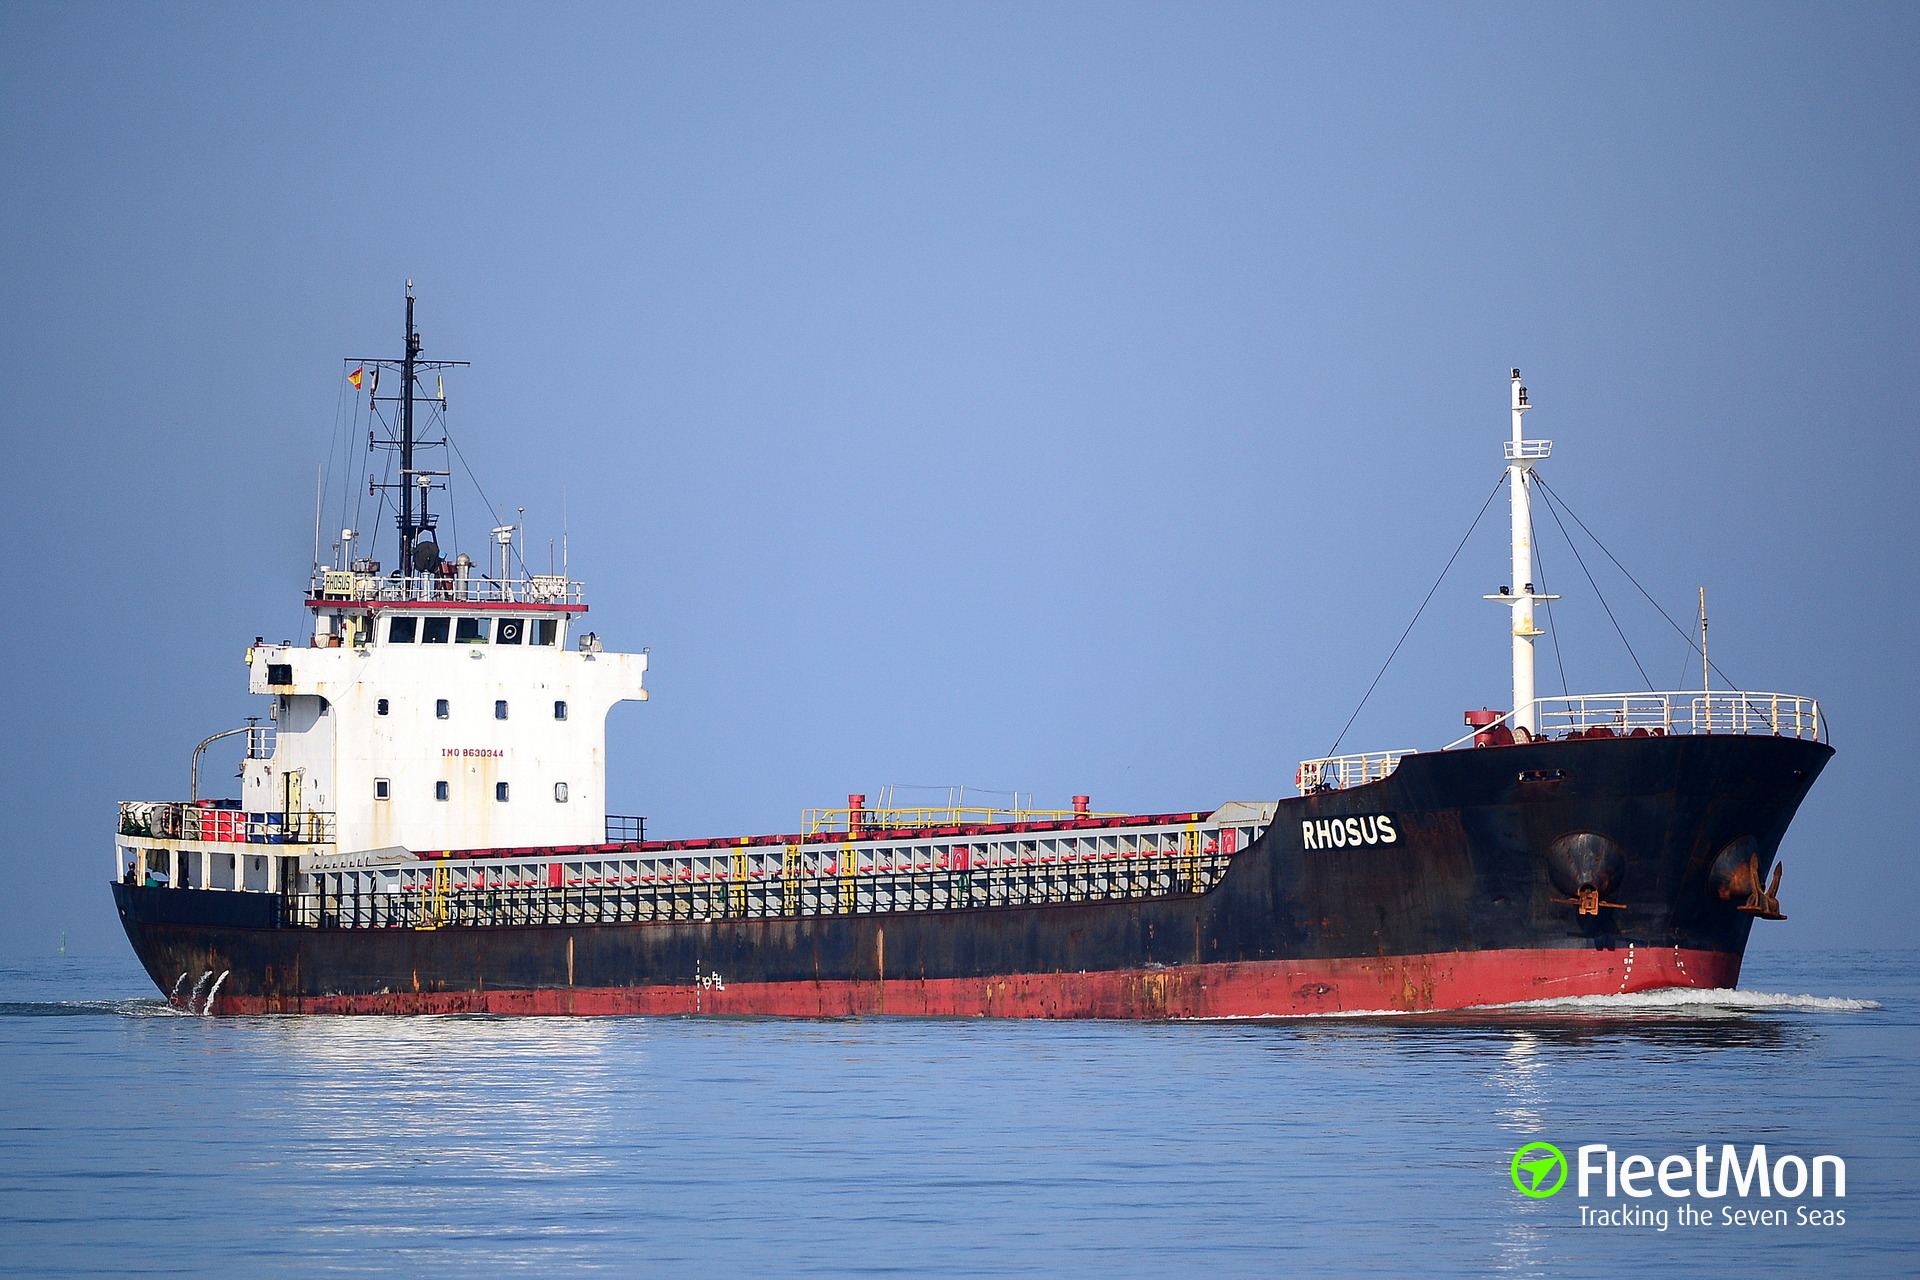 Crew kept hostages on a floating bomb – m/v Rhosus, Beirut